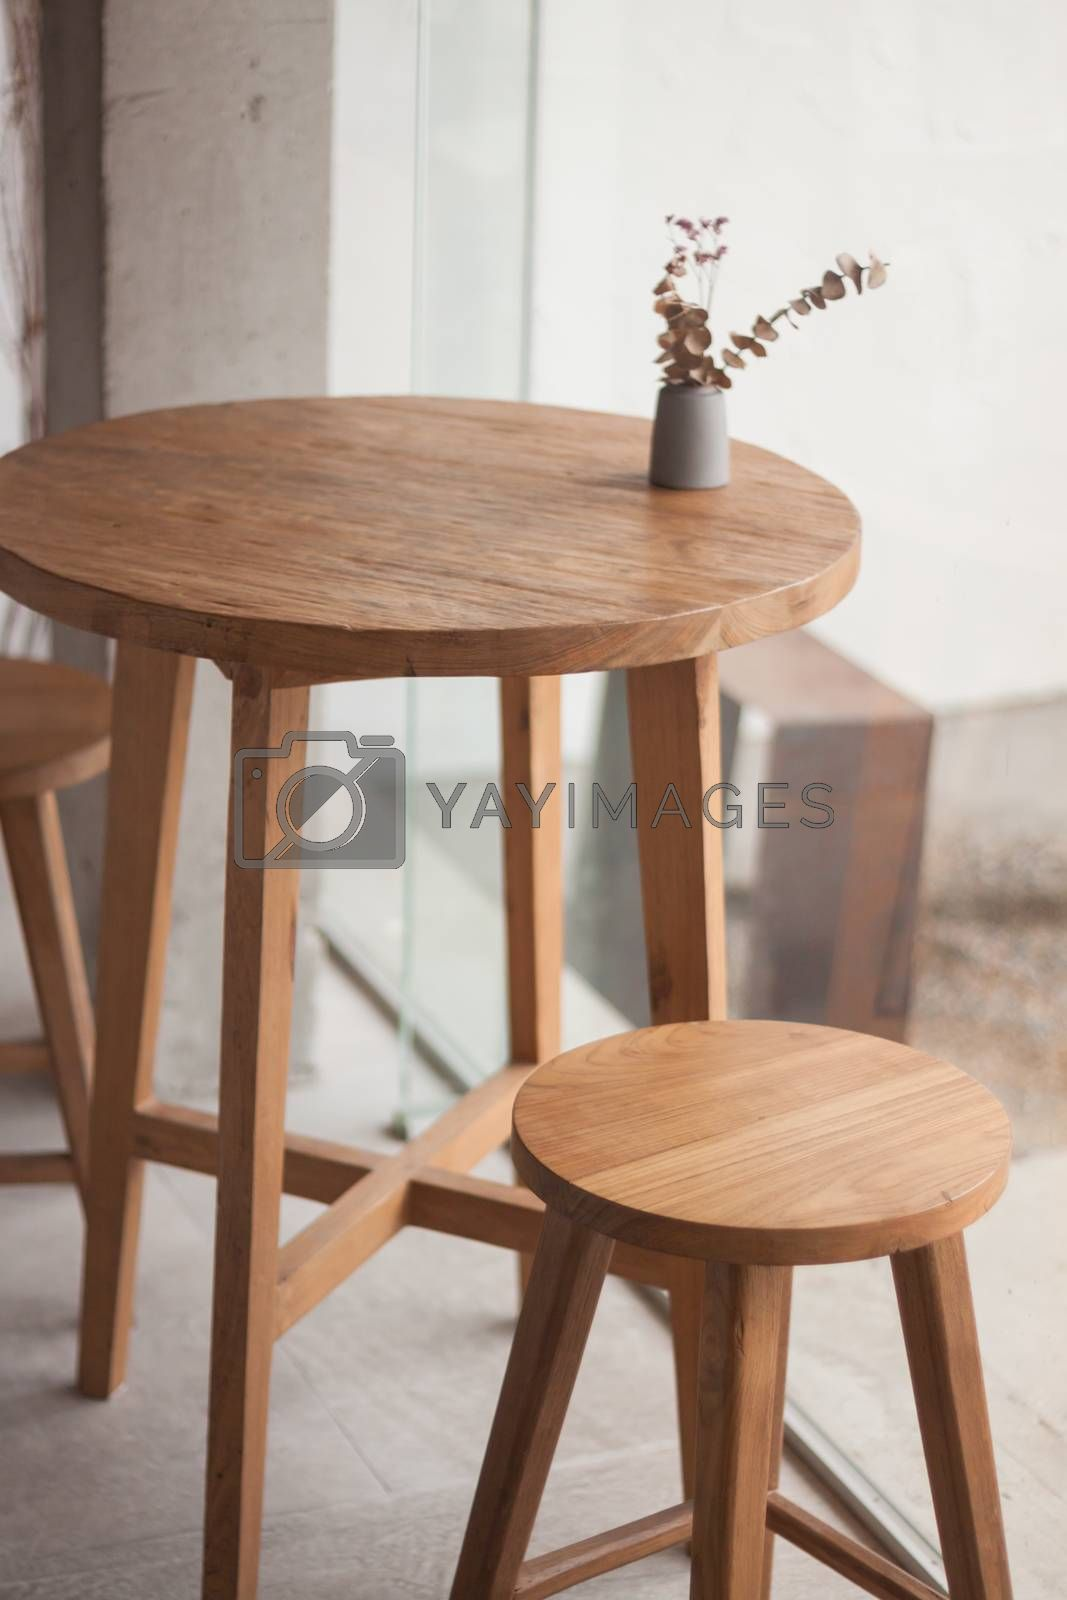 Table decorated in coffee shop, stock photo